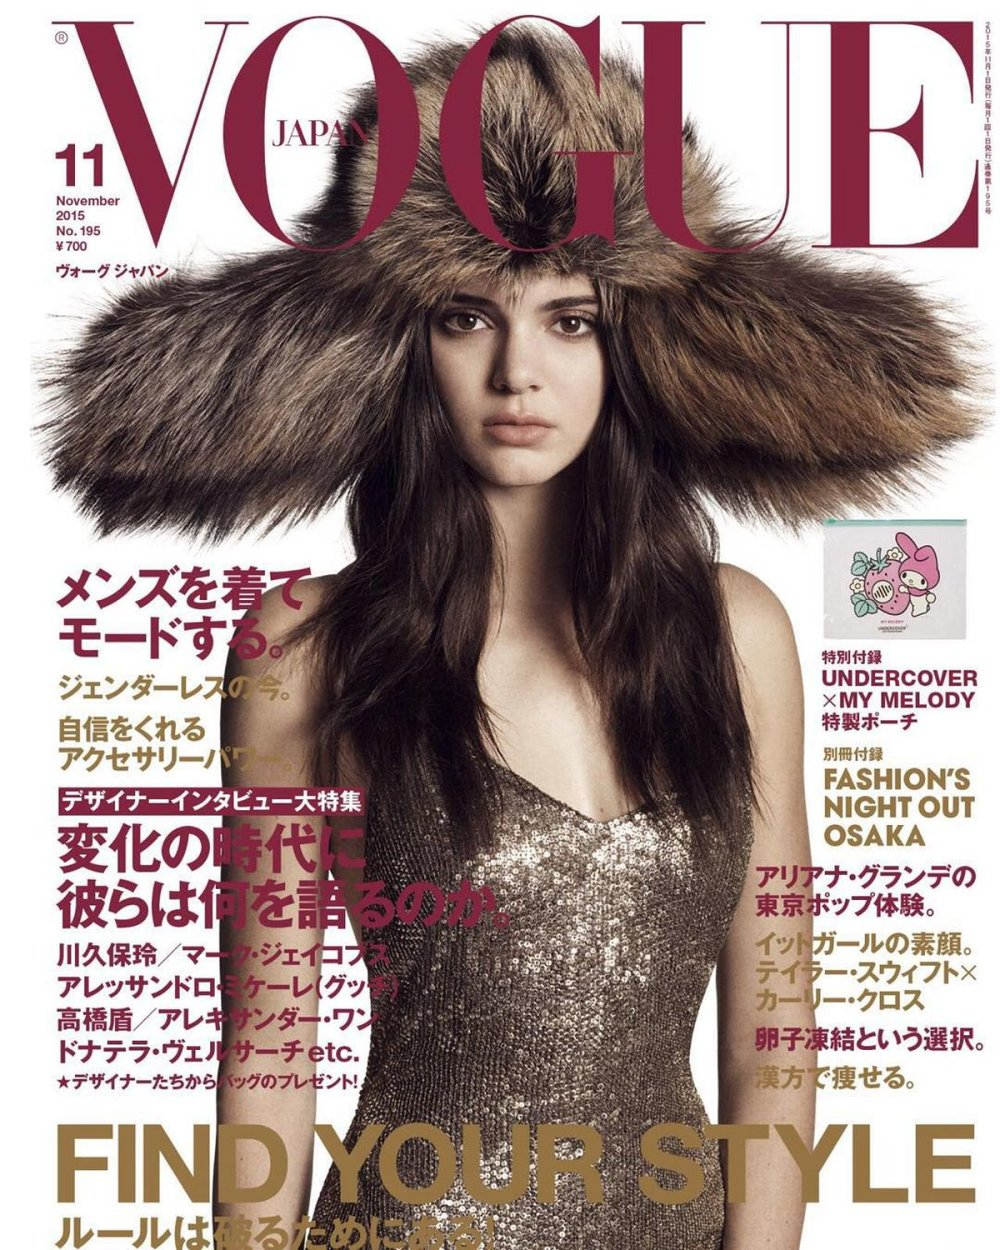 Giovanna-Battaglia-Vogue-Japan-November-2015-Cover-Kendall-Jenner-Cover.jpg